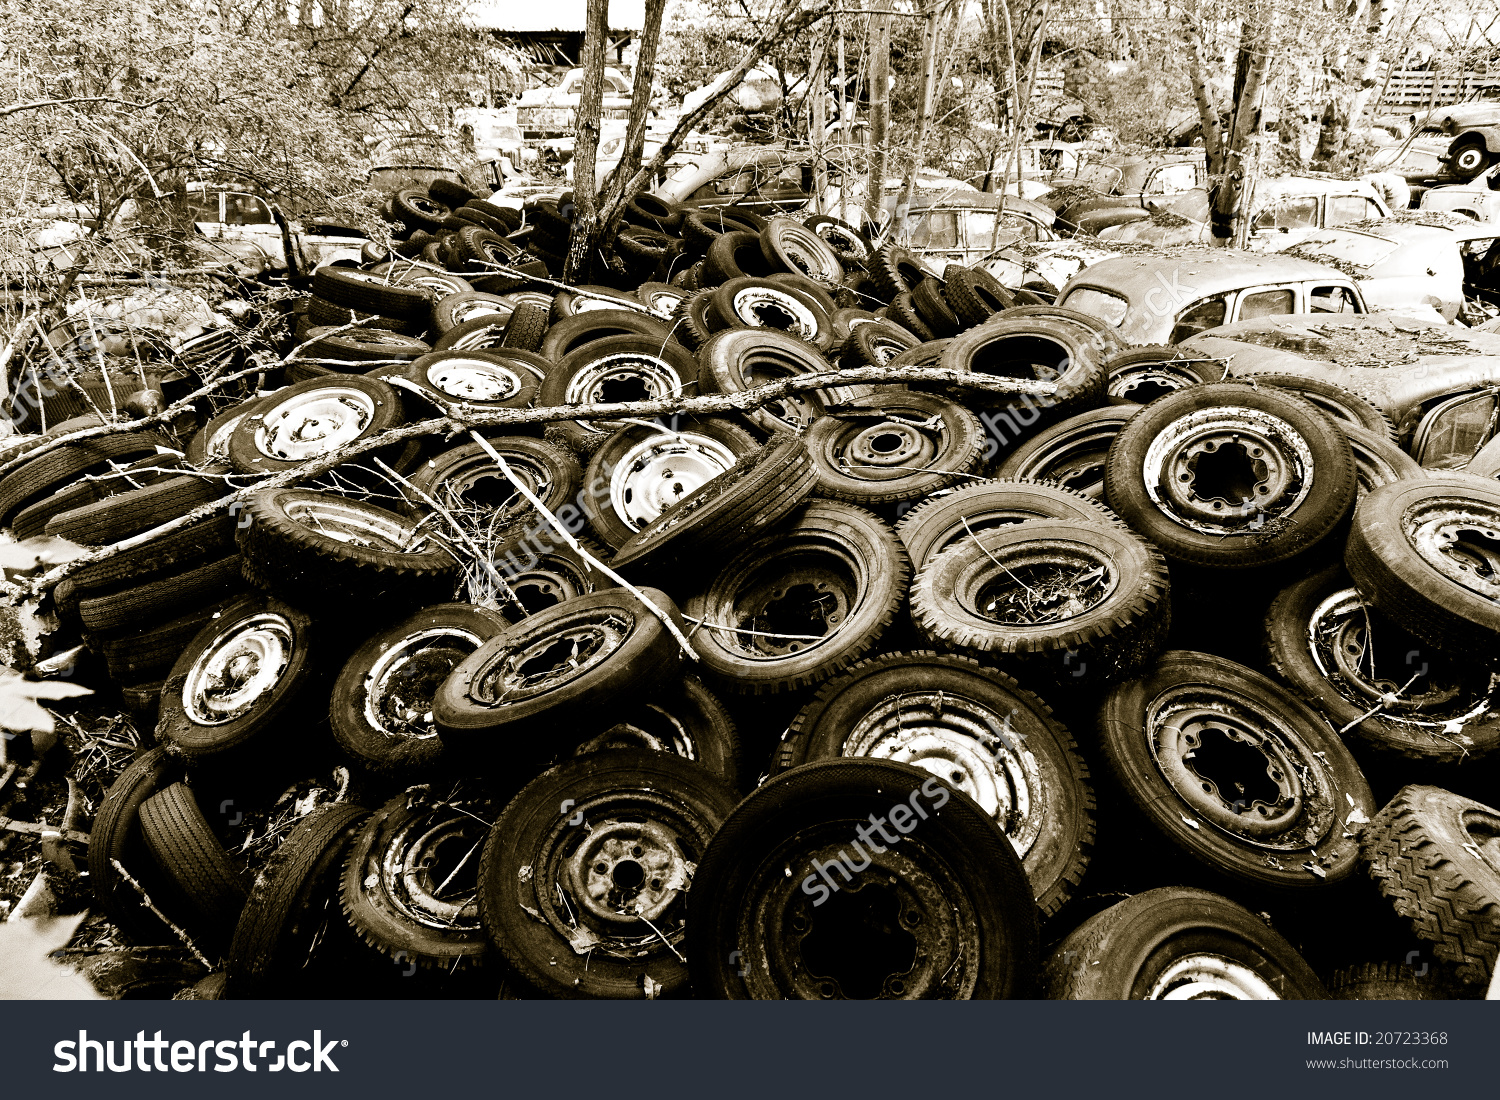 Old Cars On A Car Cemetery In Switzerland Stock Photo 20723368.